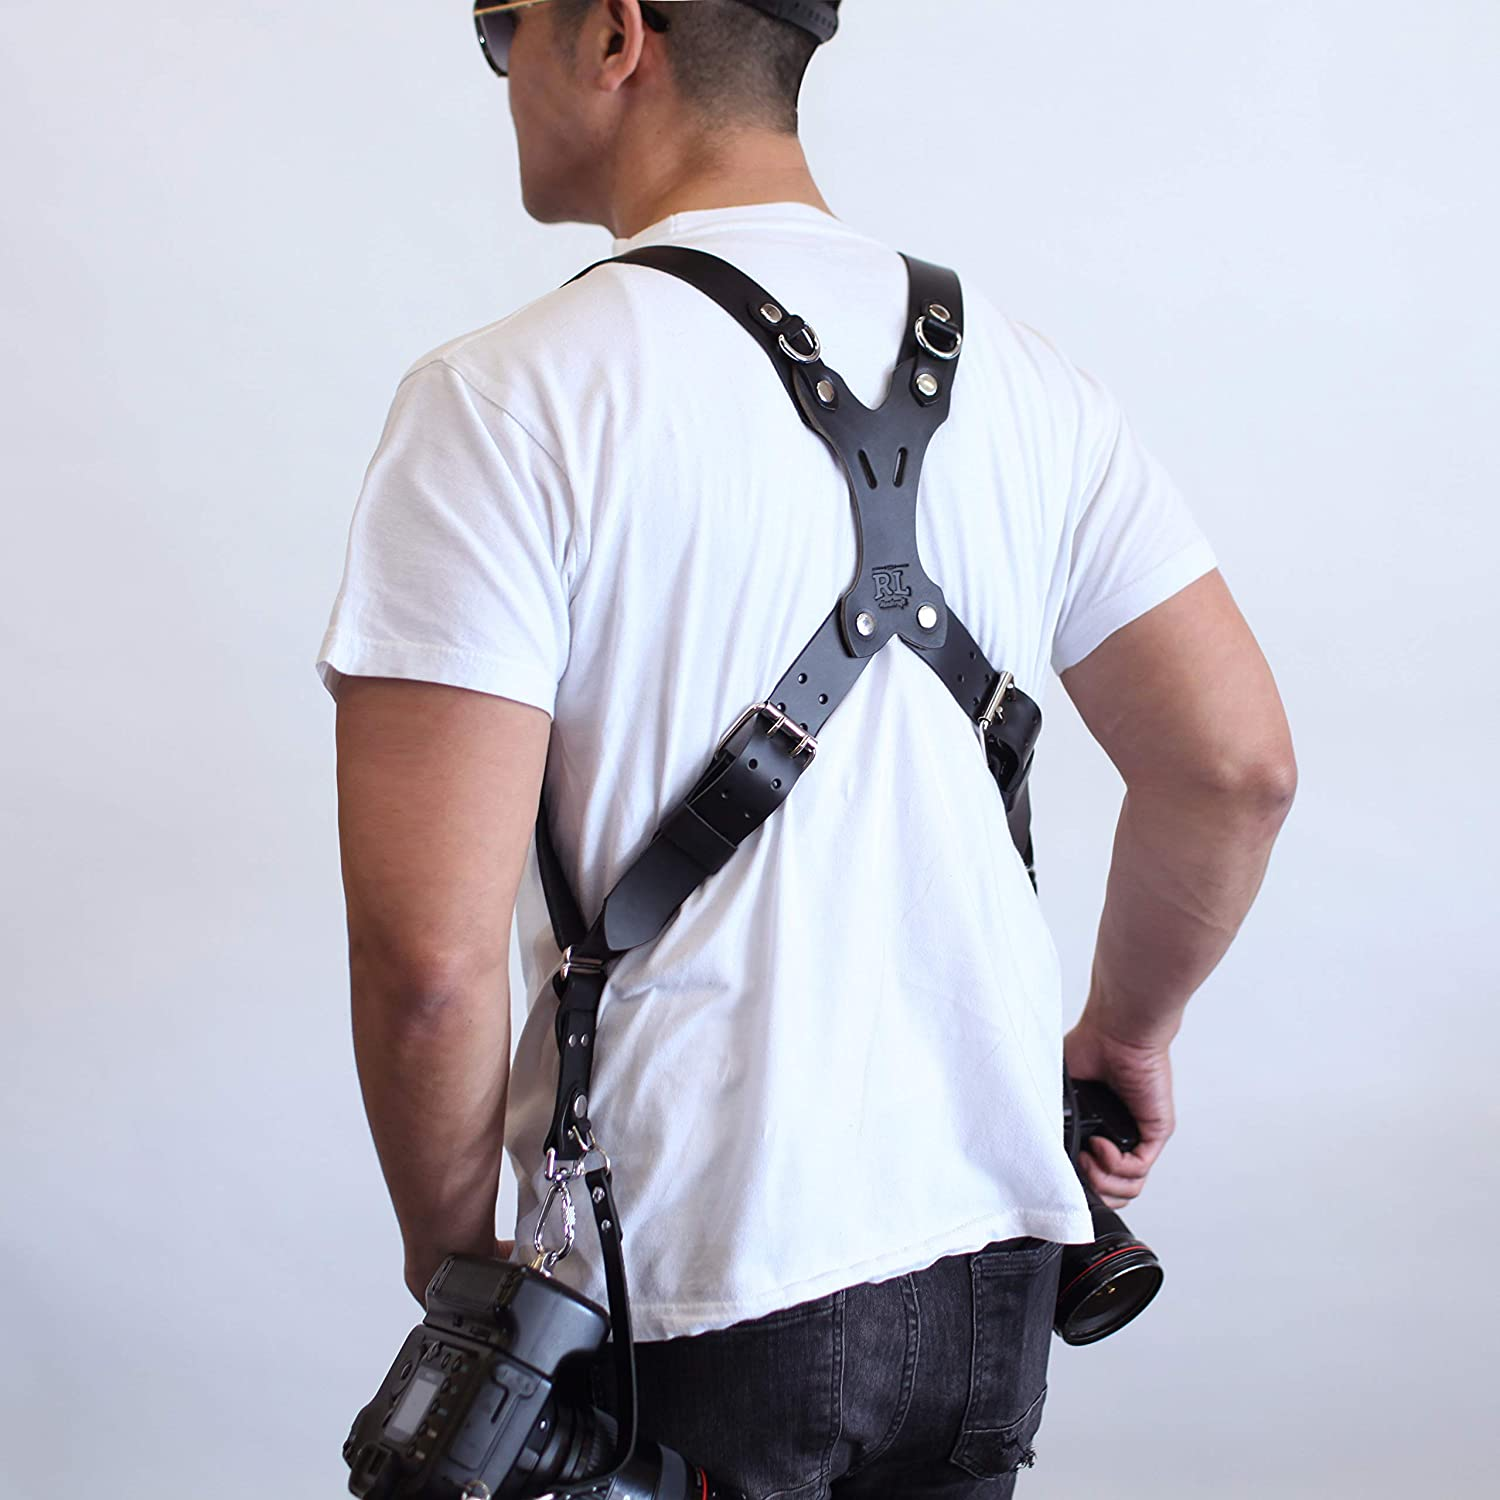 Mirrorless DLSR Rebel Dual Handmade Leather Camera Harness Large, Coffee Point /& Shoot Made in The USA Sling /& Strap RL Handcrafts